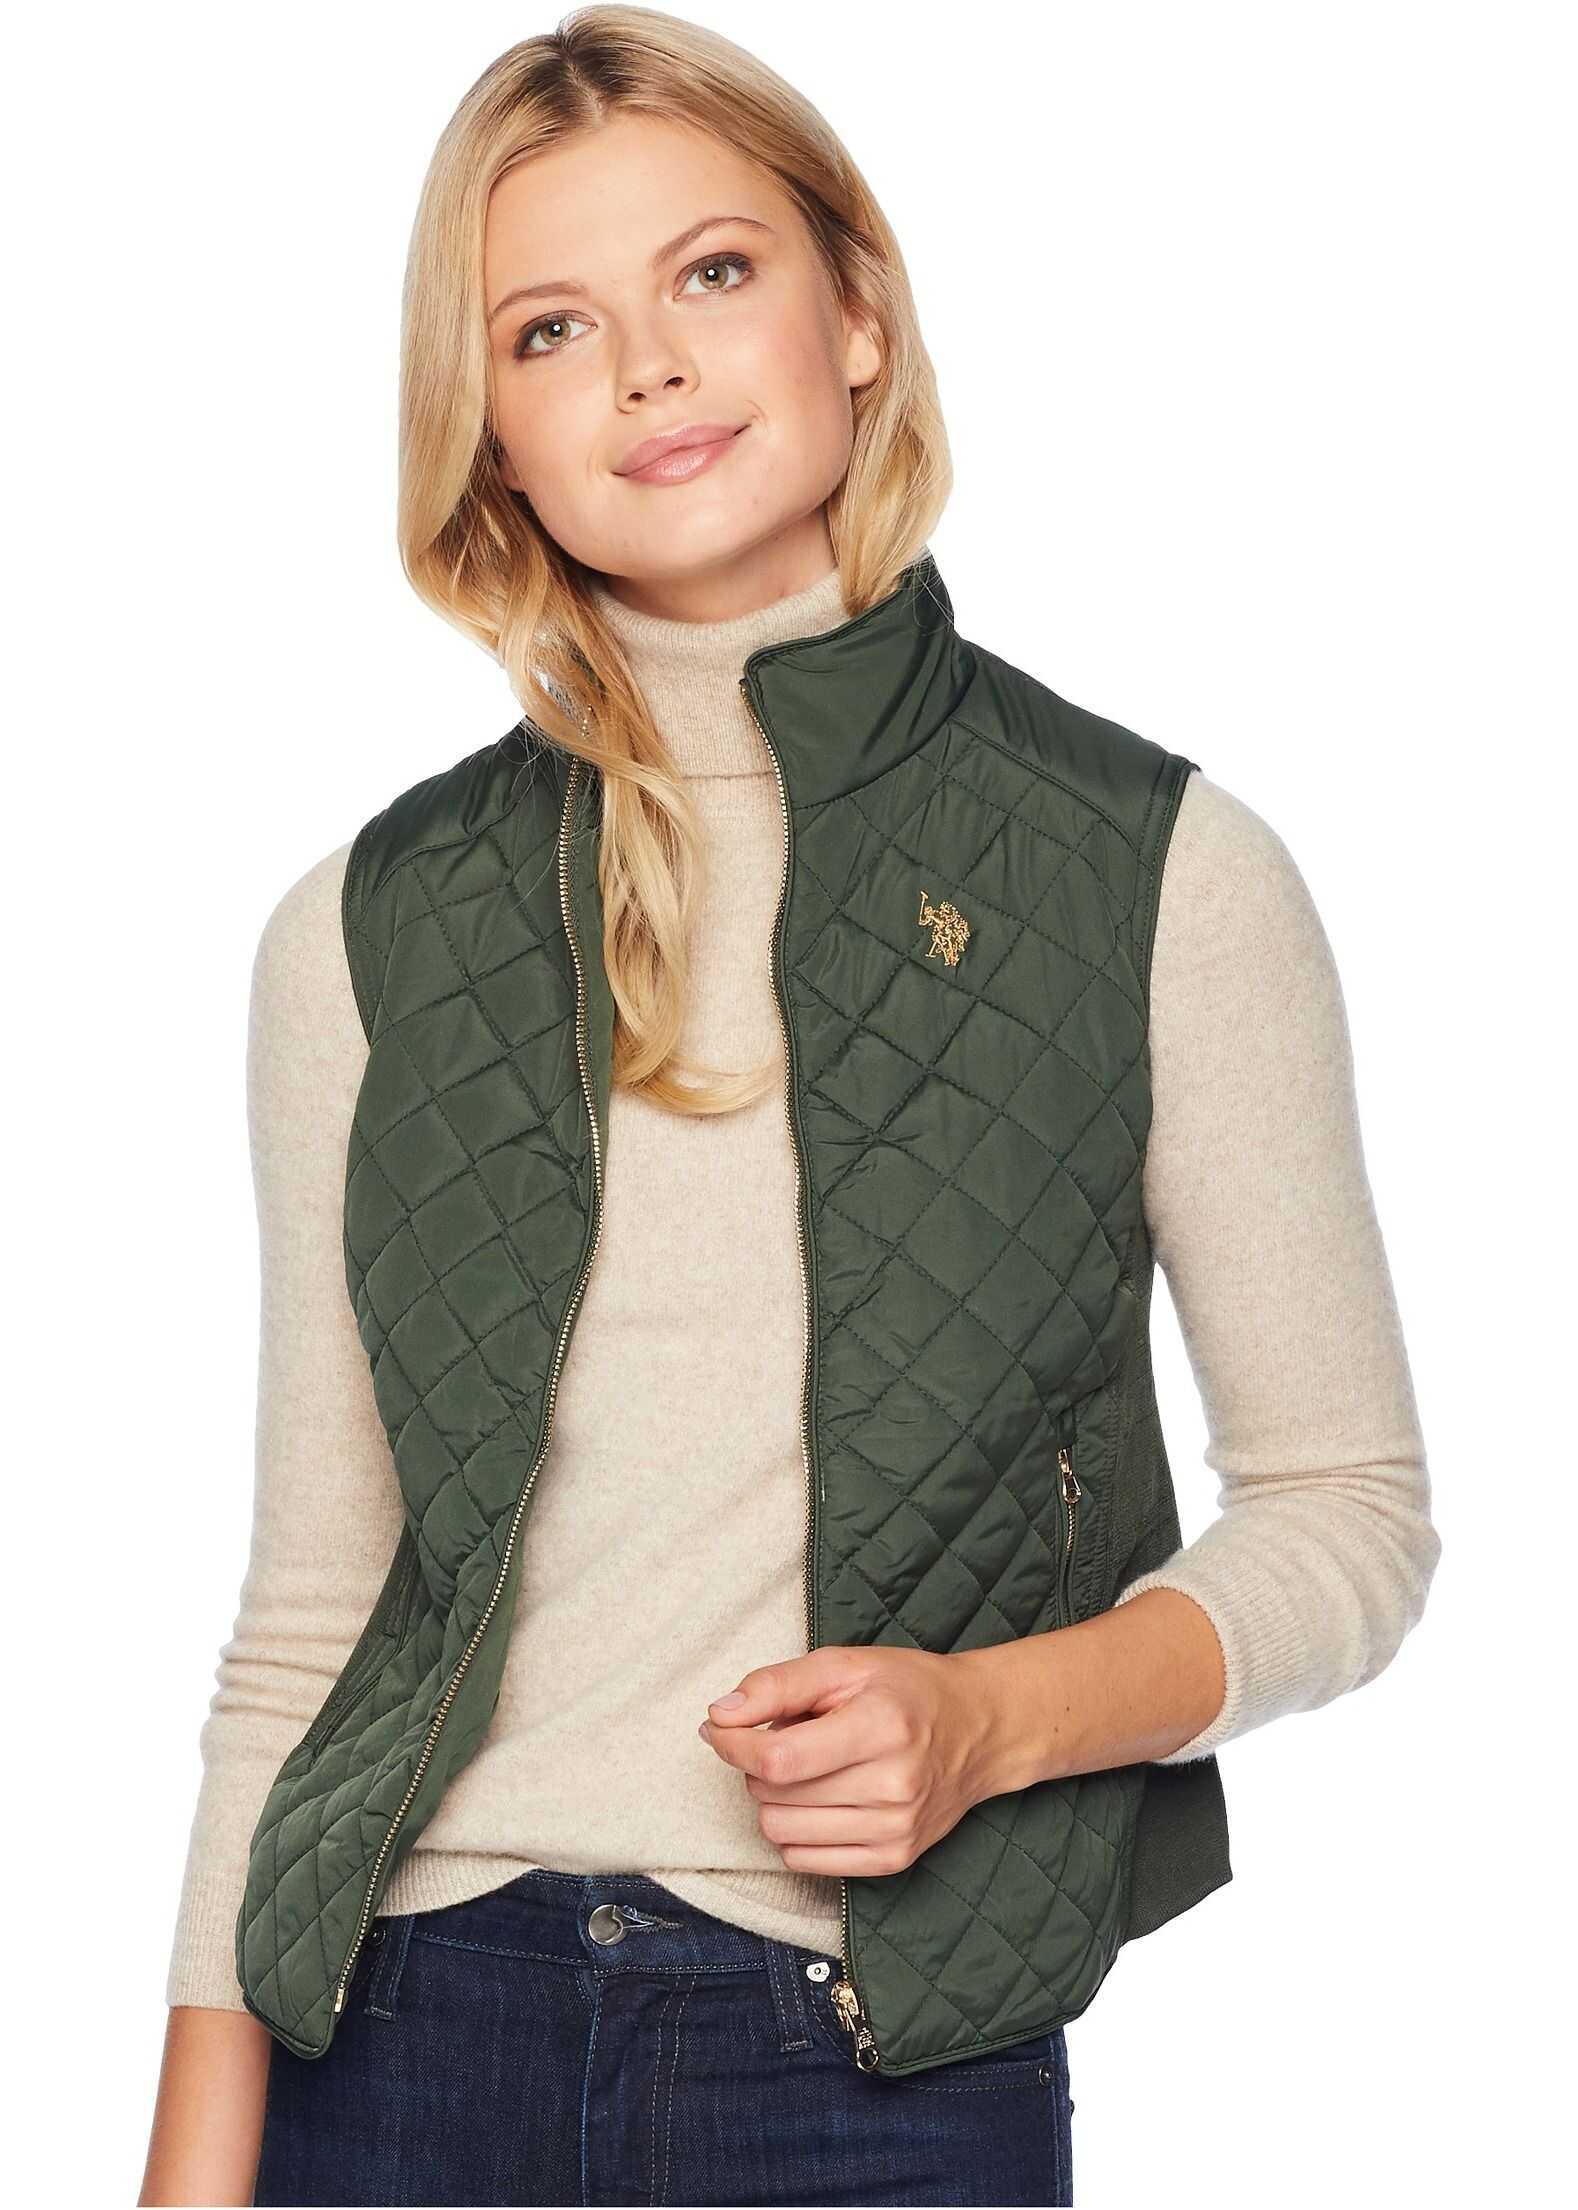 U.S. POLO ASSN. Puffer Vest Olive